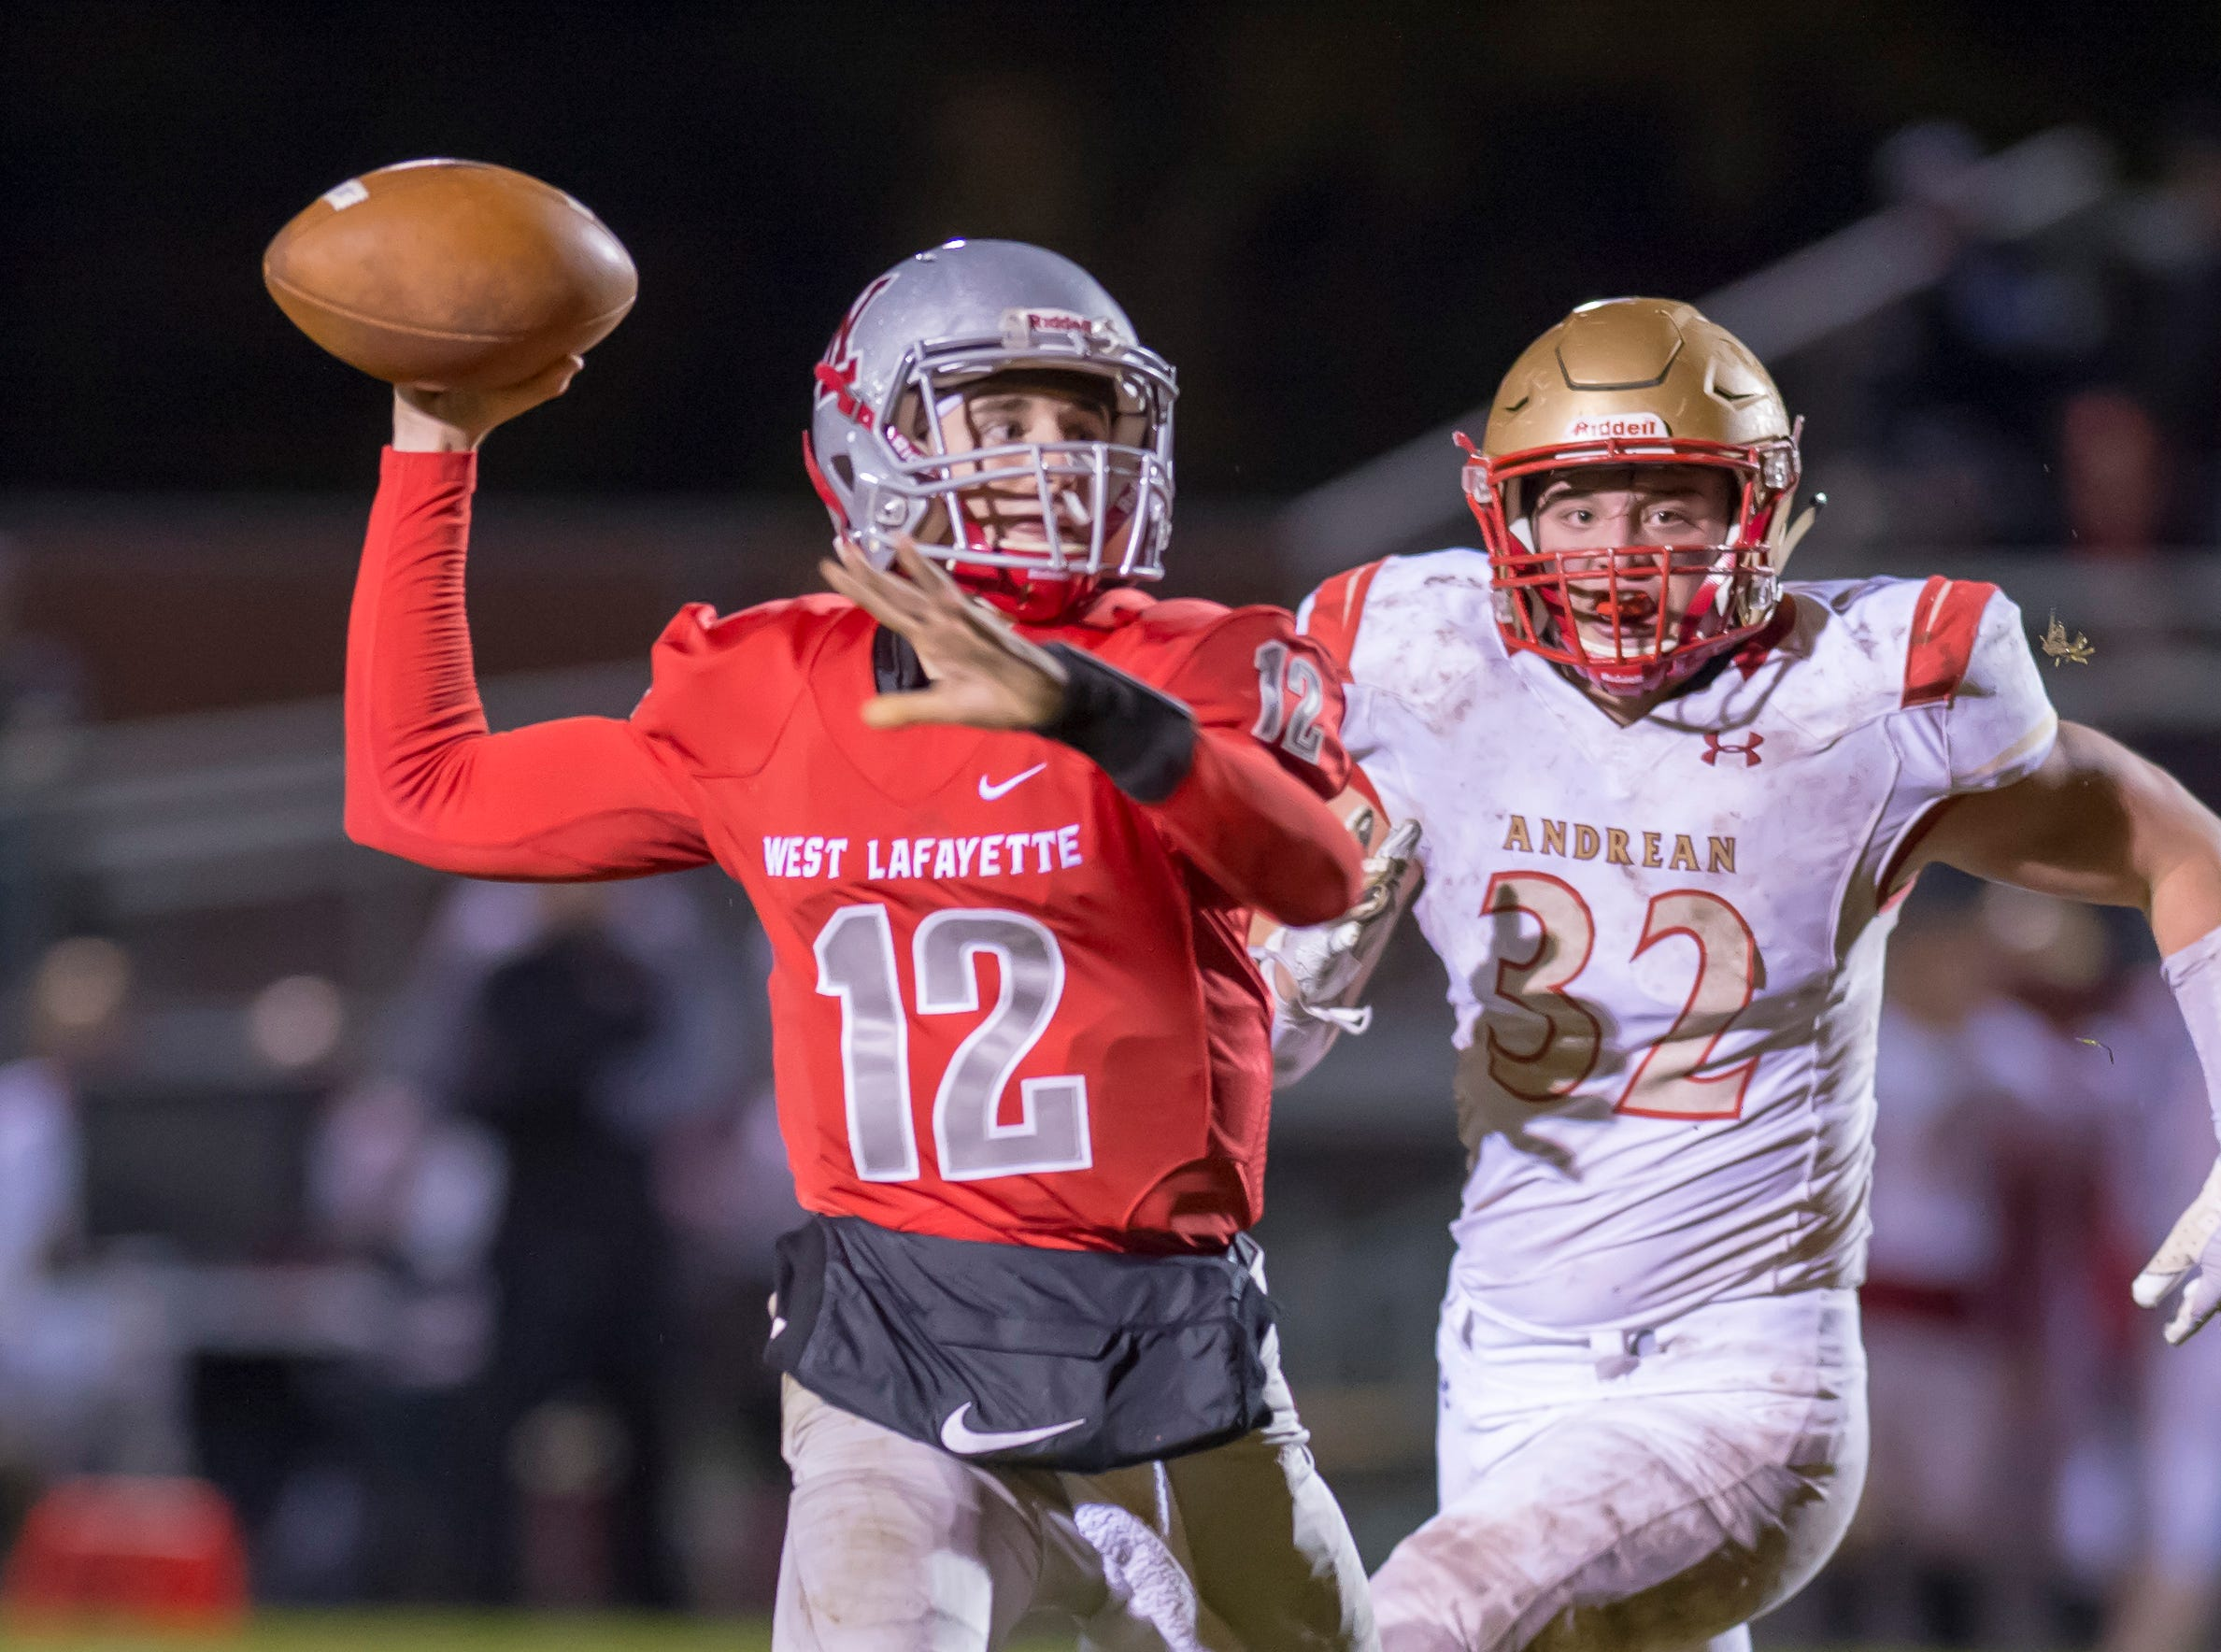 Kyle Adams launches a deep ball in the first half  the sectional championship game between West Lafayette and Andrean.